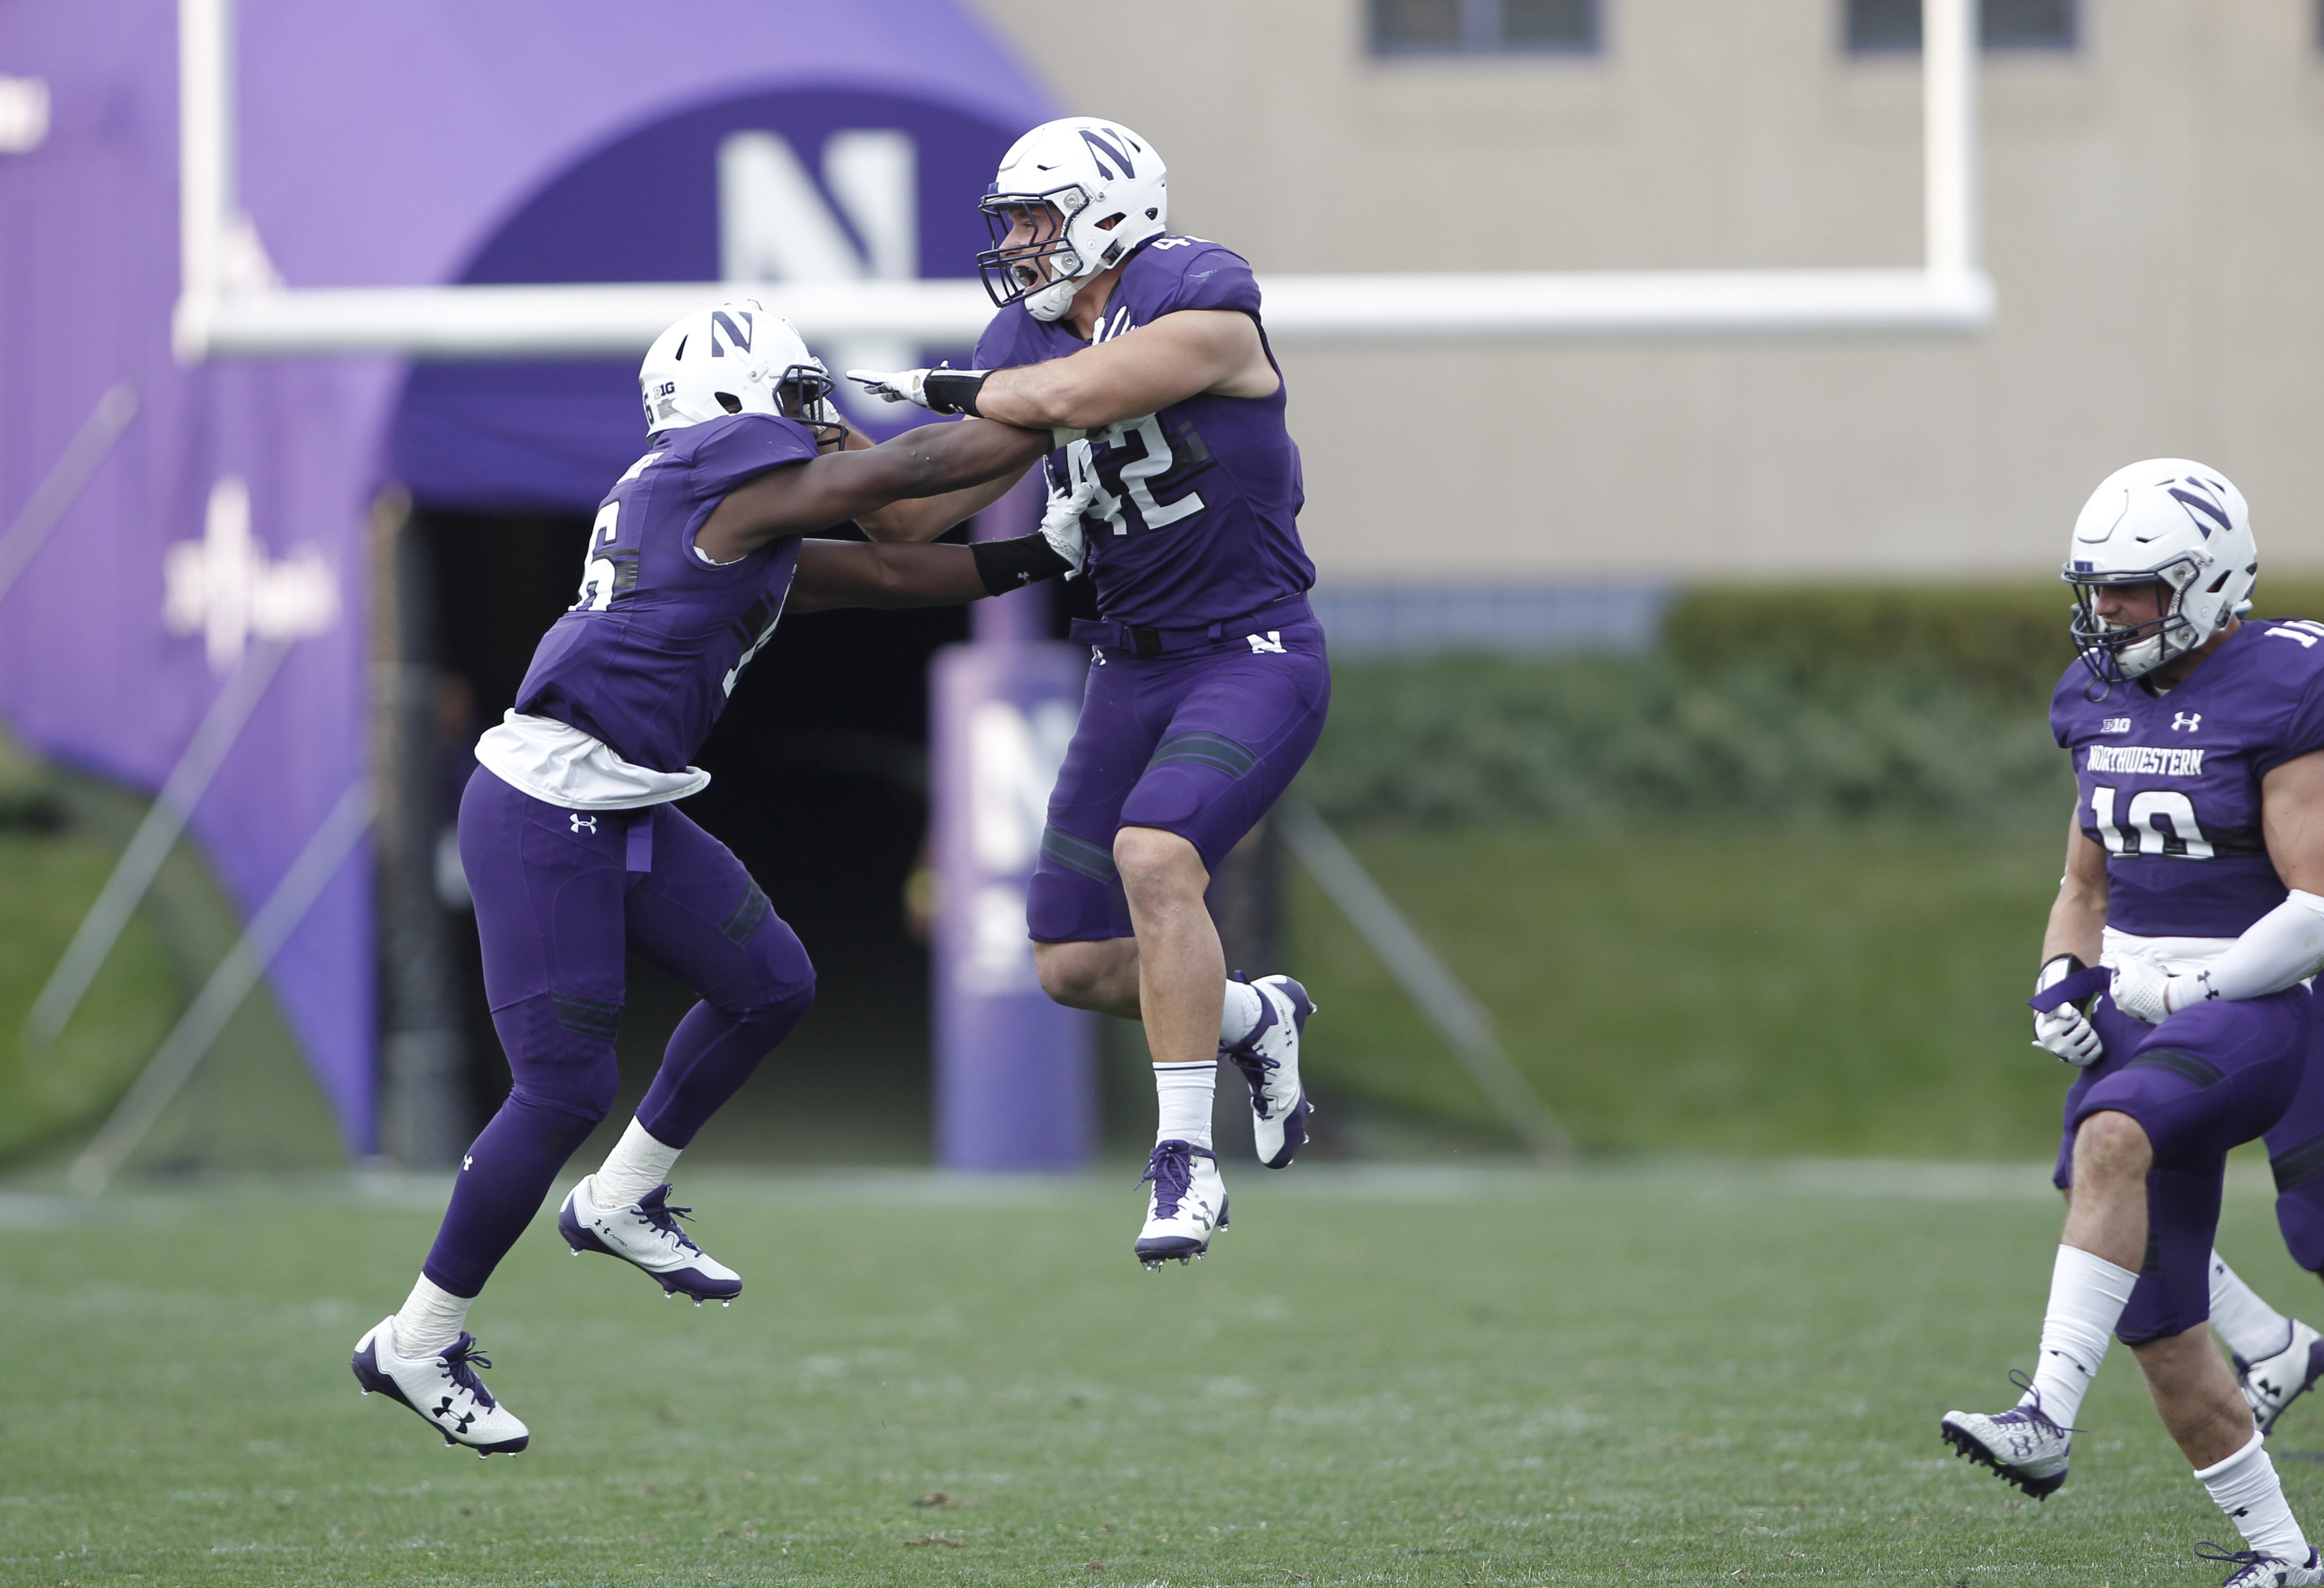 How to watch Northwestern vs  Bowling Green: TV channel, live online